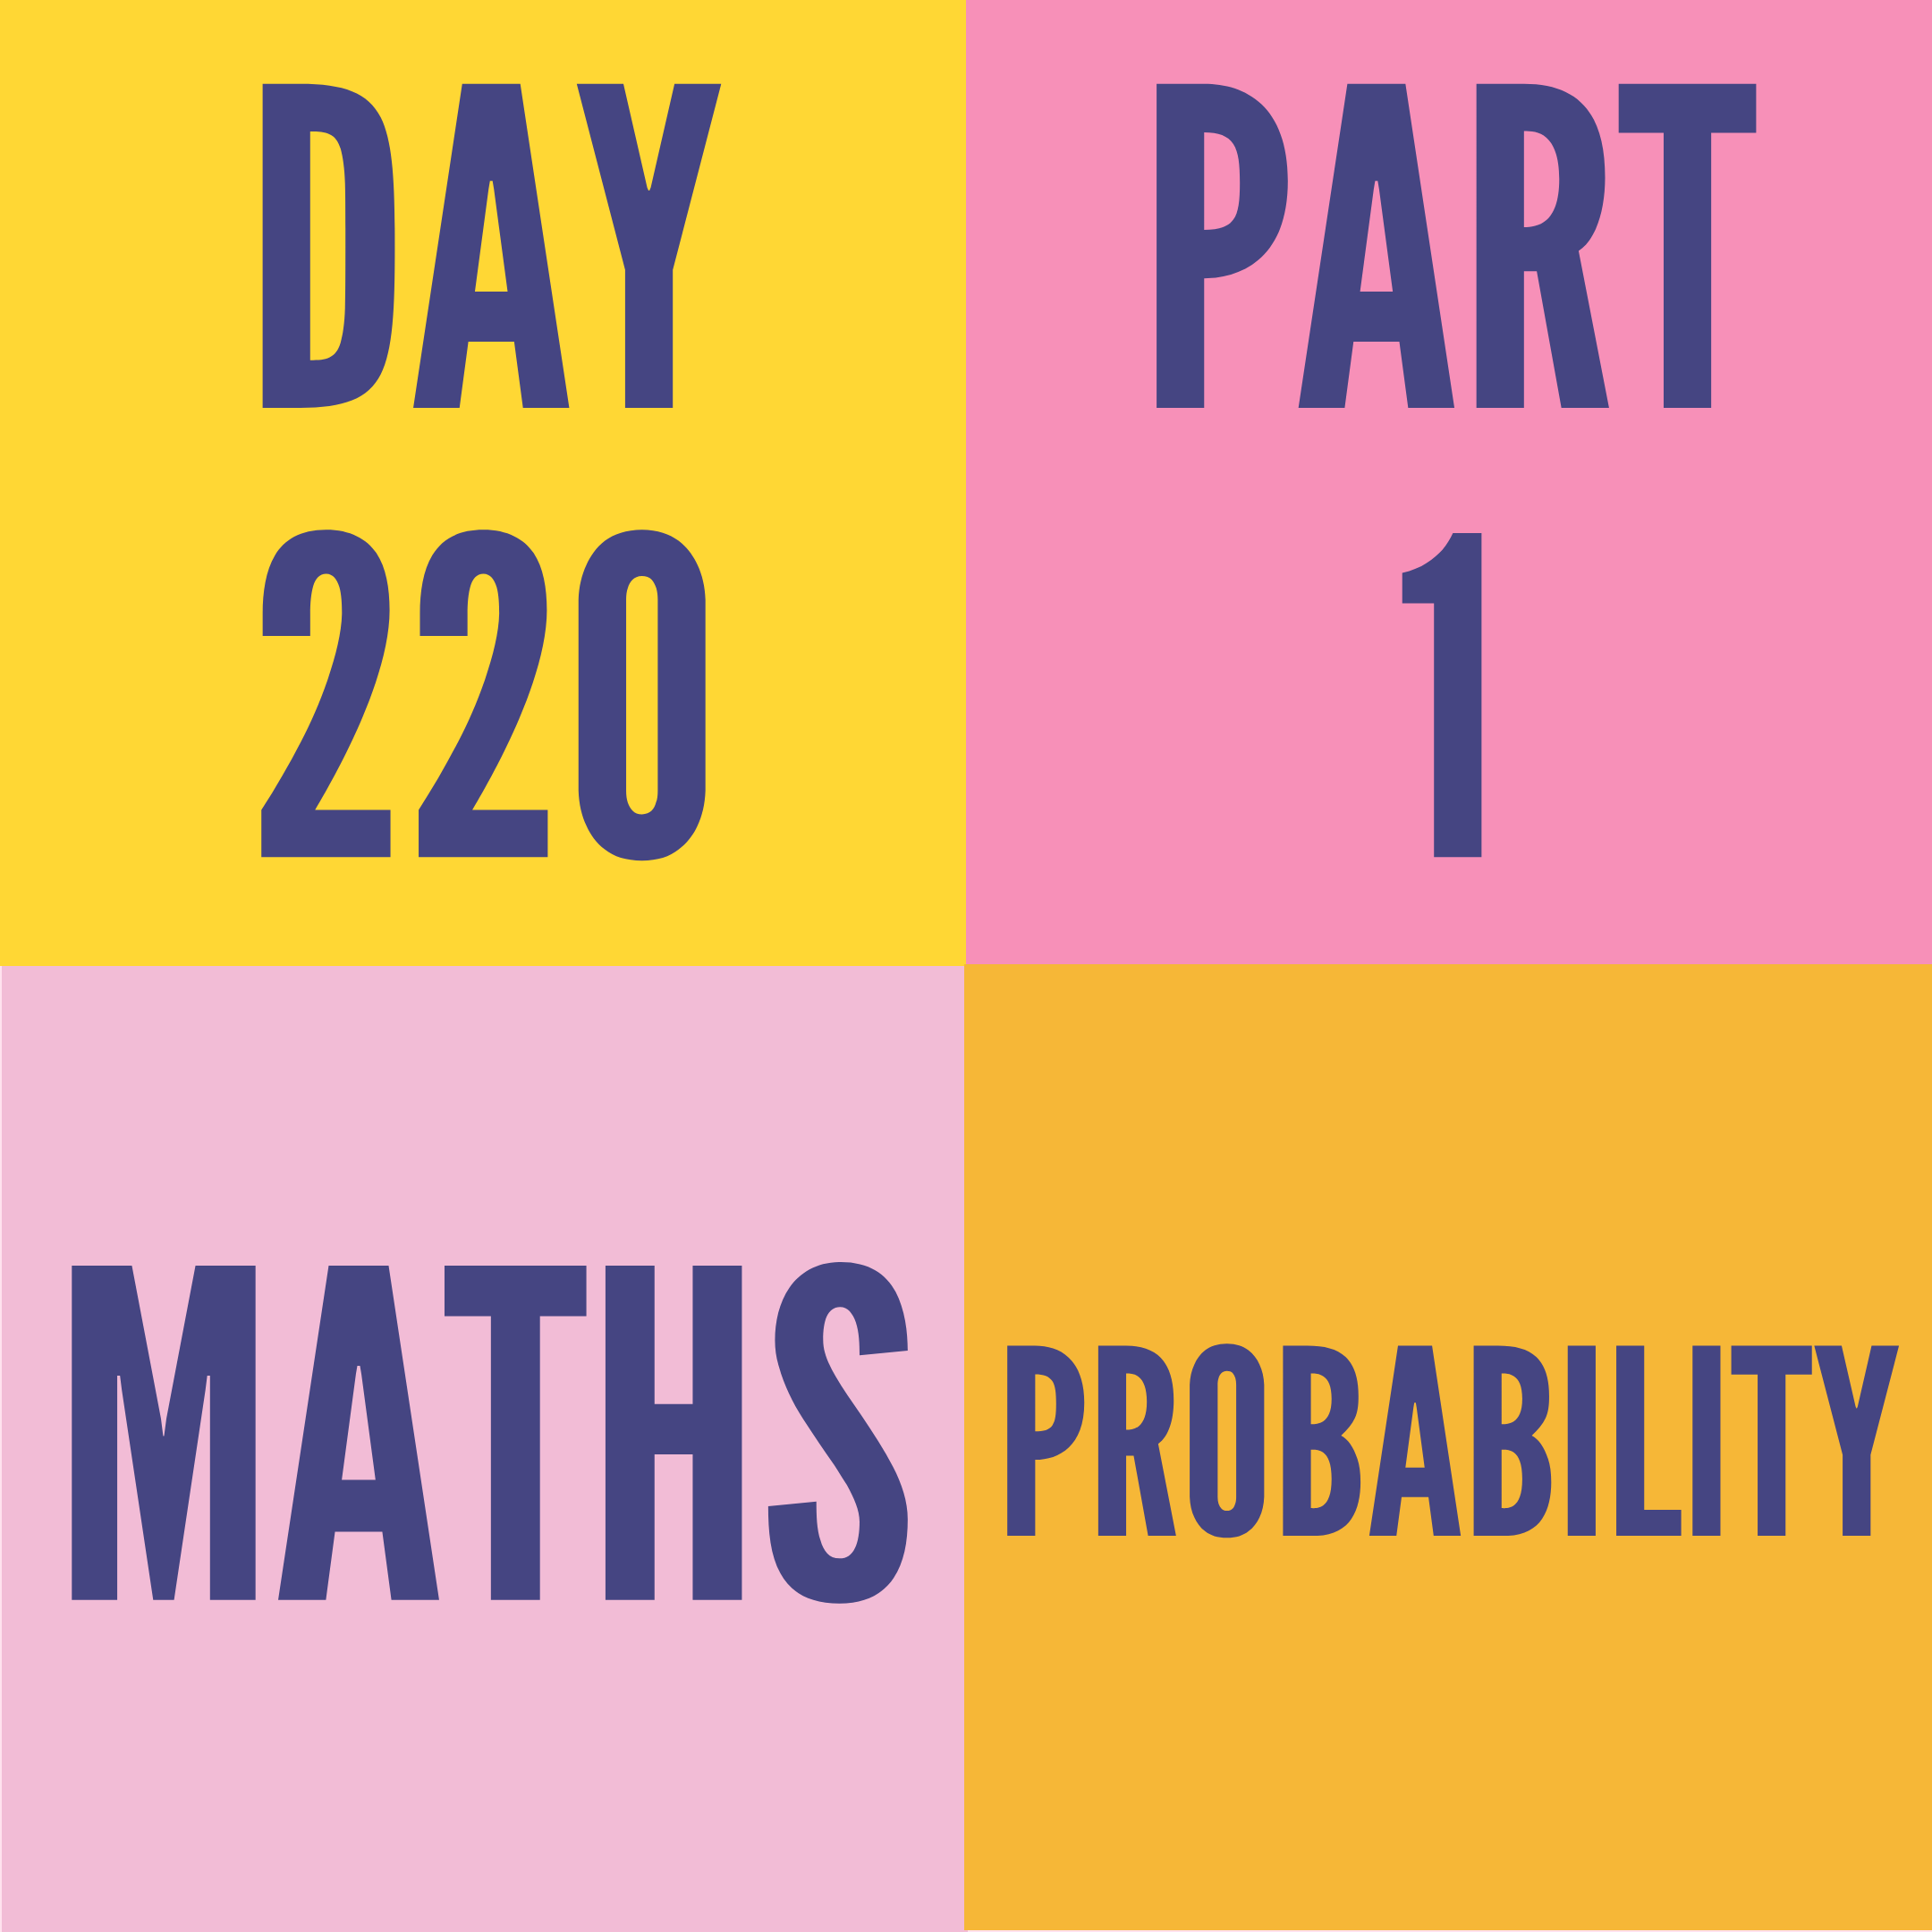 DAY-220 PART-1 PROBABILITY